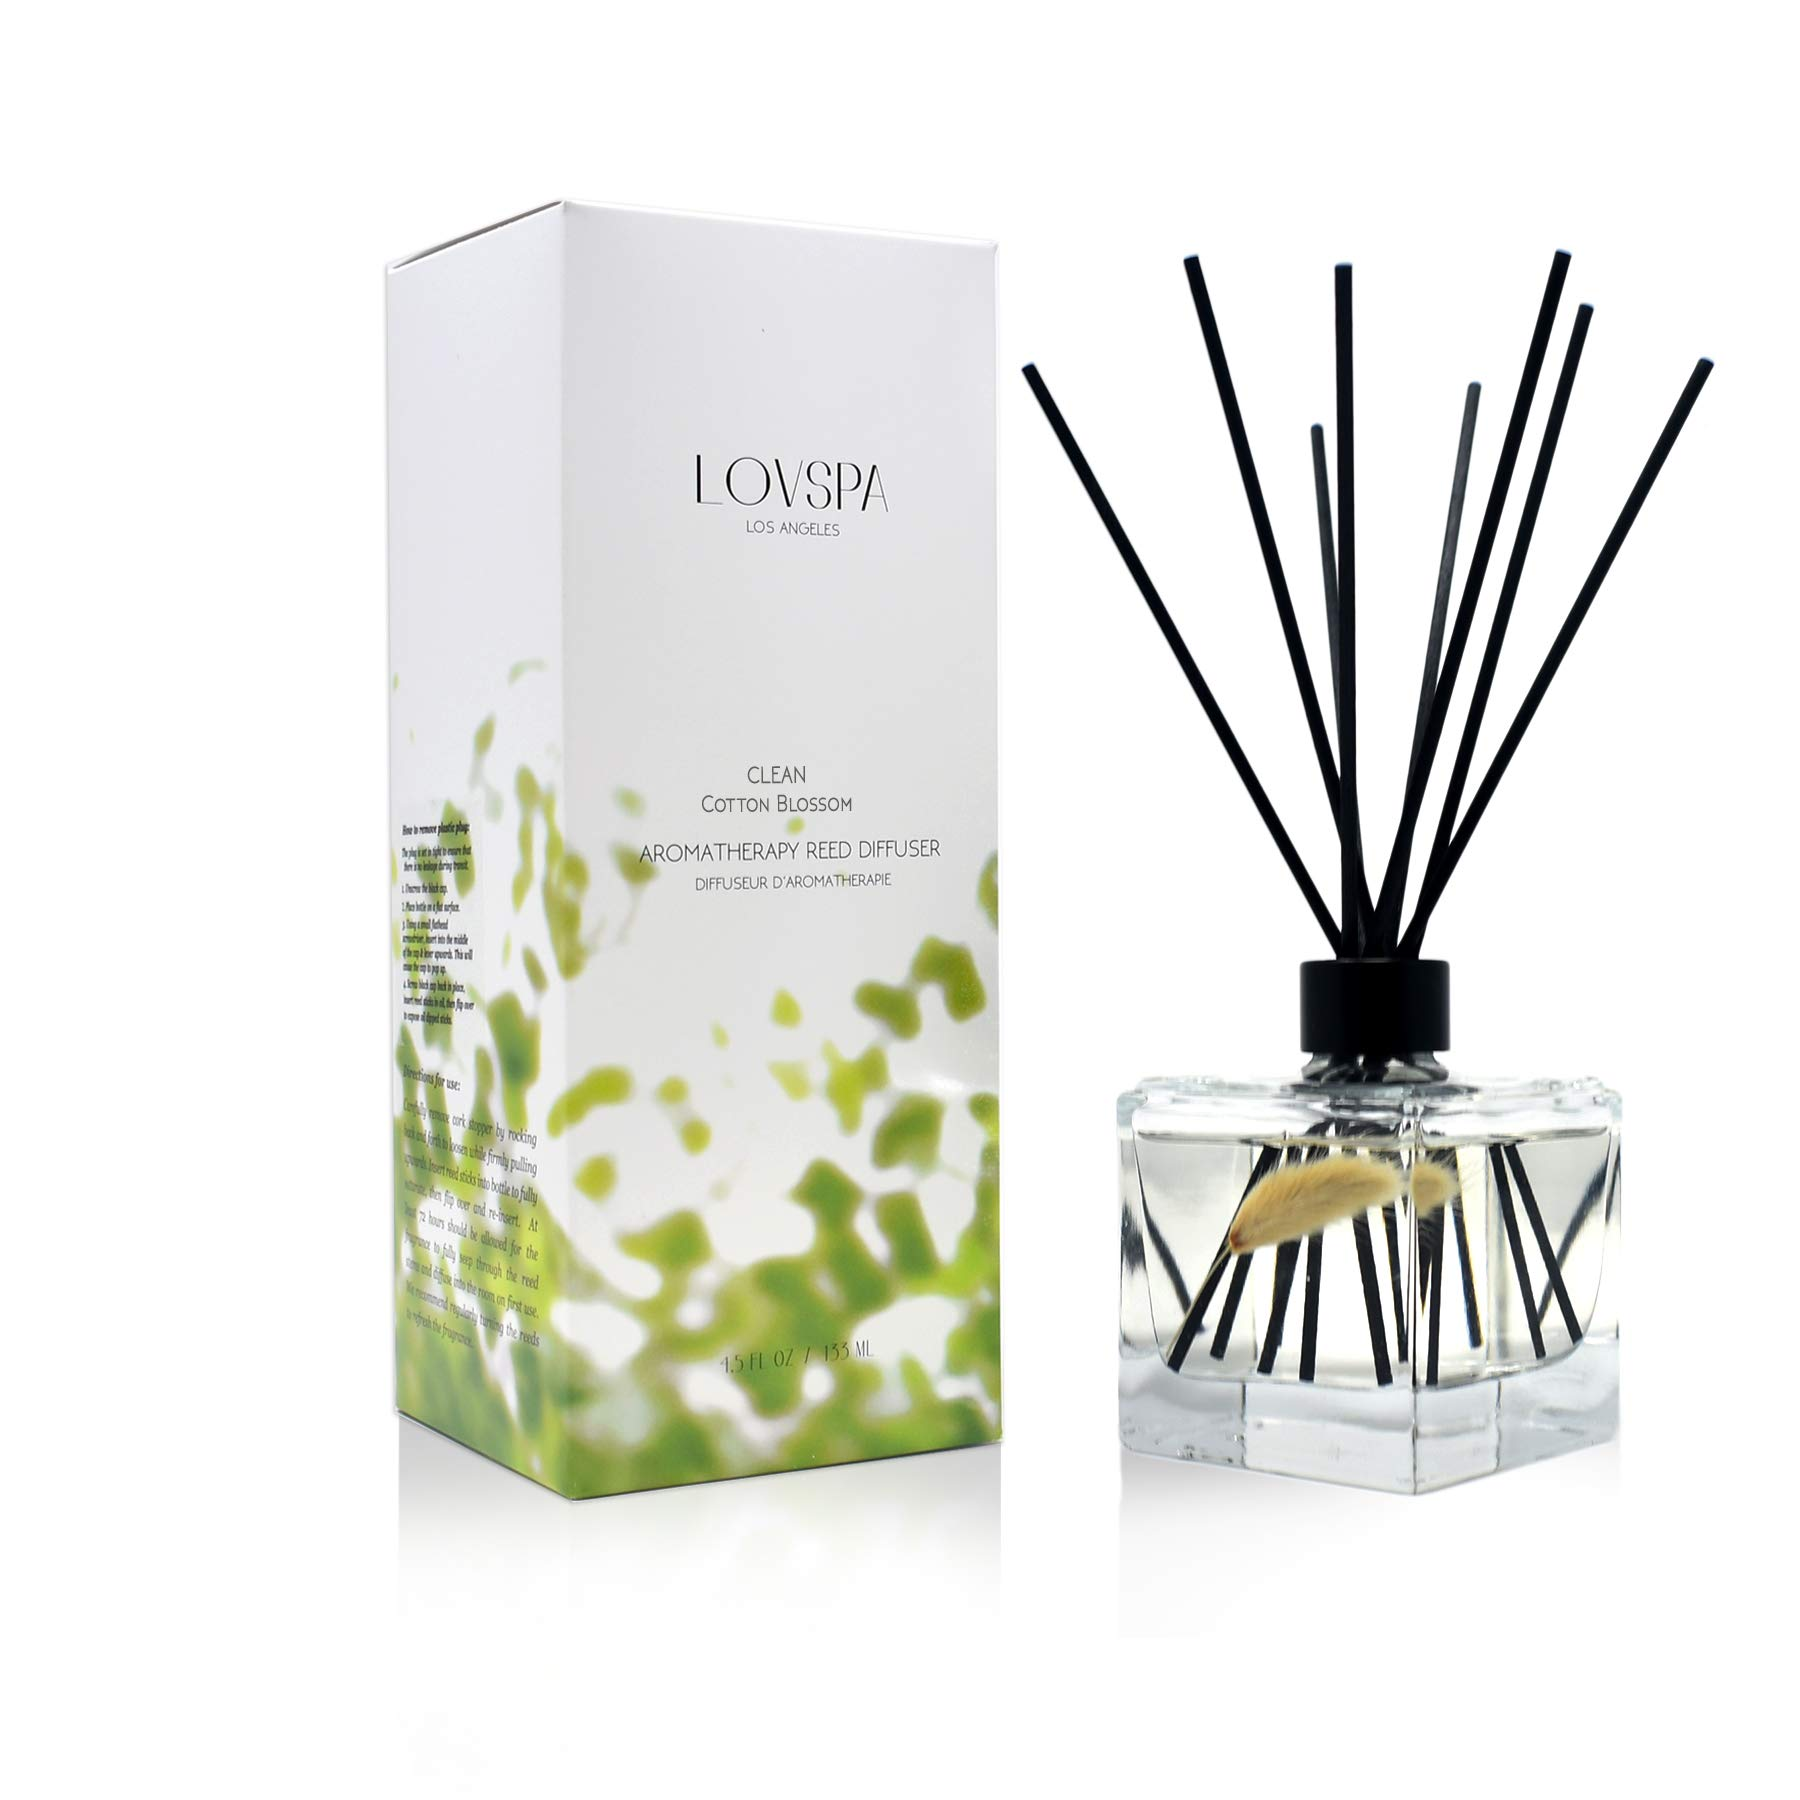 LOVSPA Clean Cotton Blossom Reed Diffuser Oil and Sticks Gift Set | Airy Green Floral with Powdery Woods, Sun Dried Linen & Mandarin Blossom | Best Housewarming Gift Idea | Made in The USA by LOVSPA (Image #1)